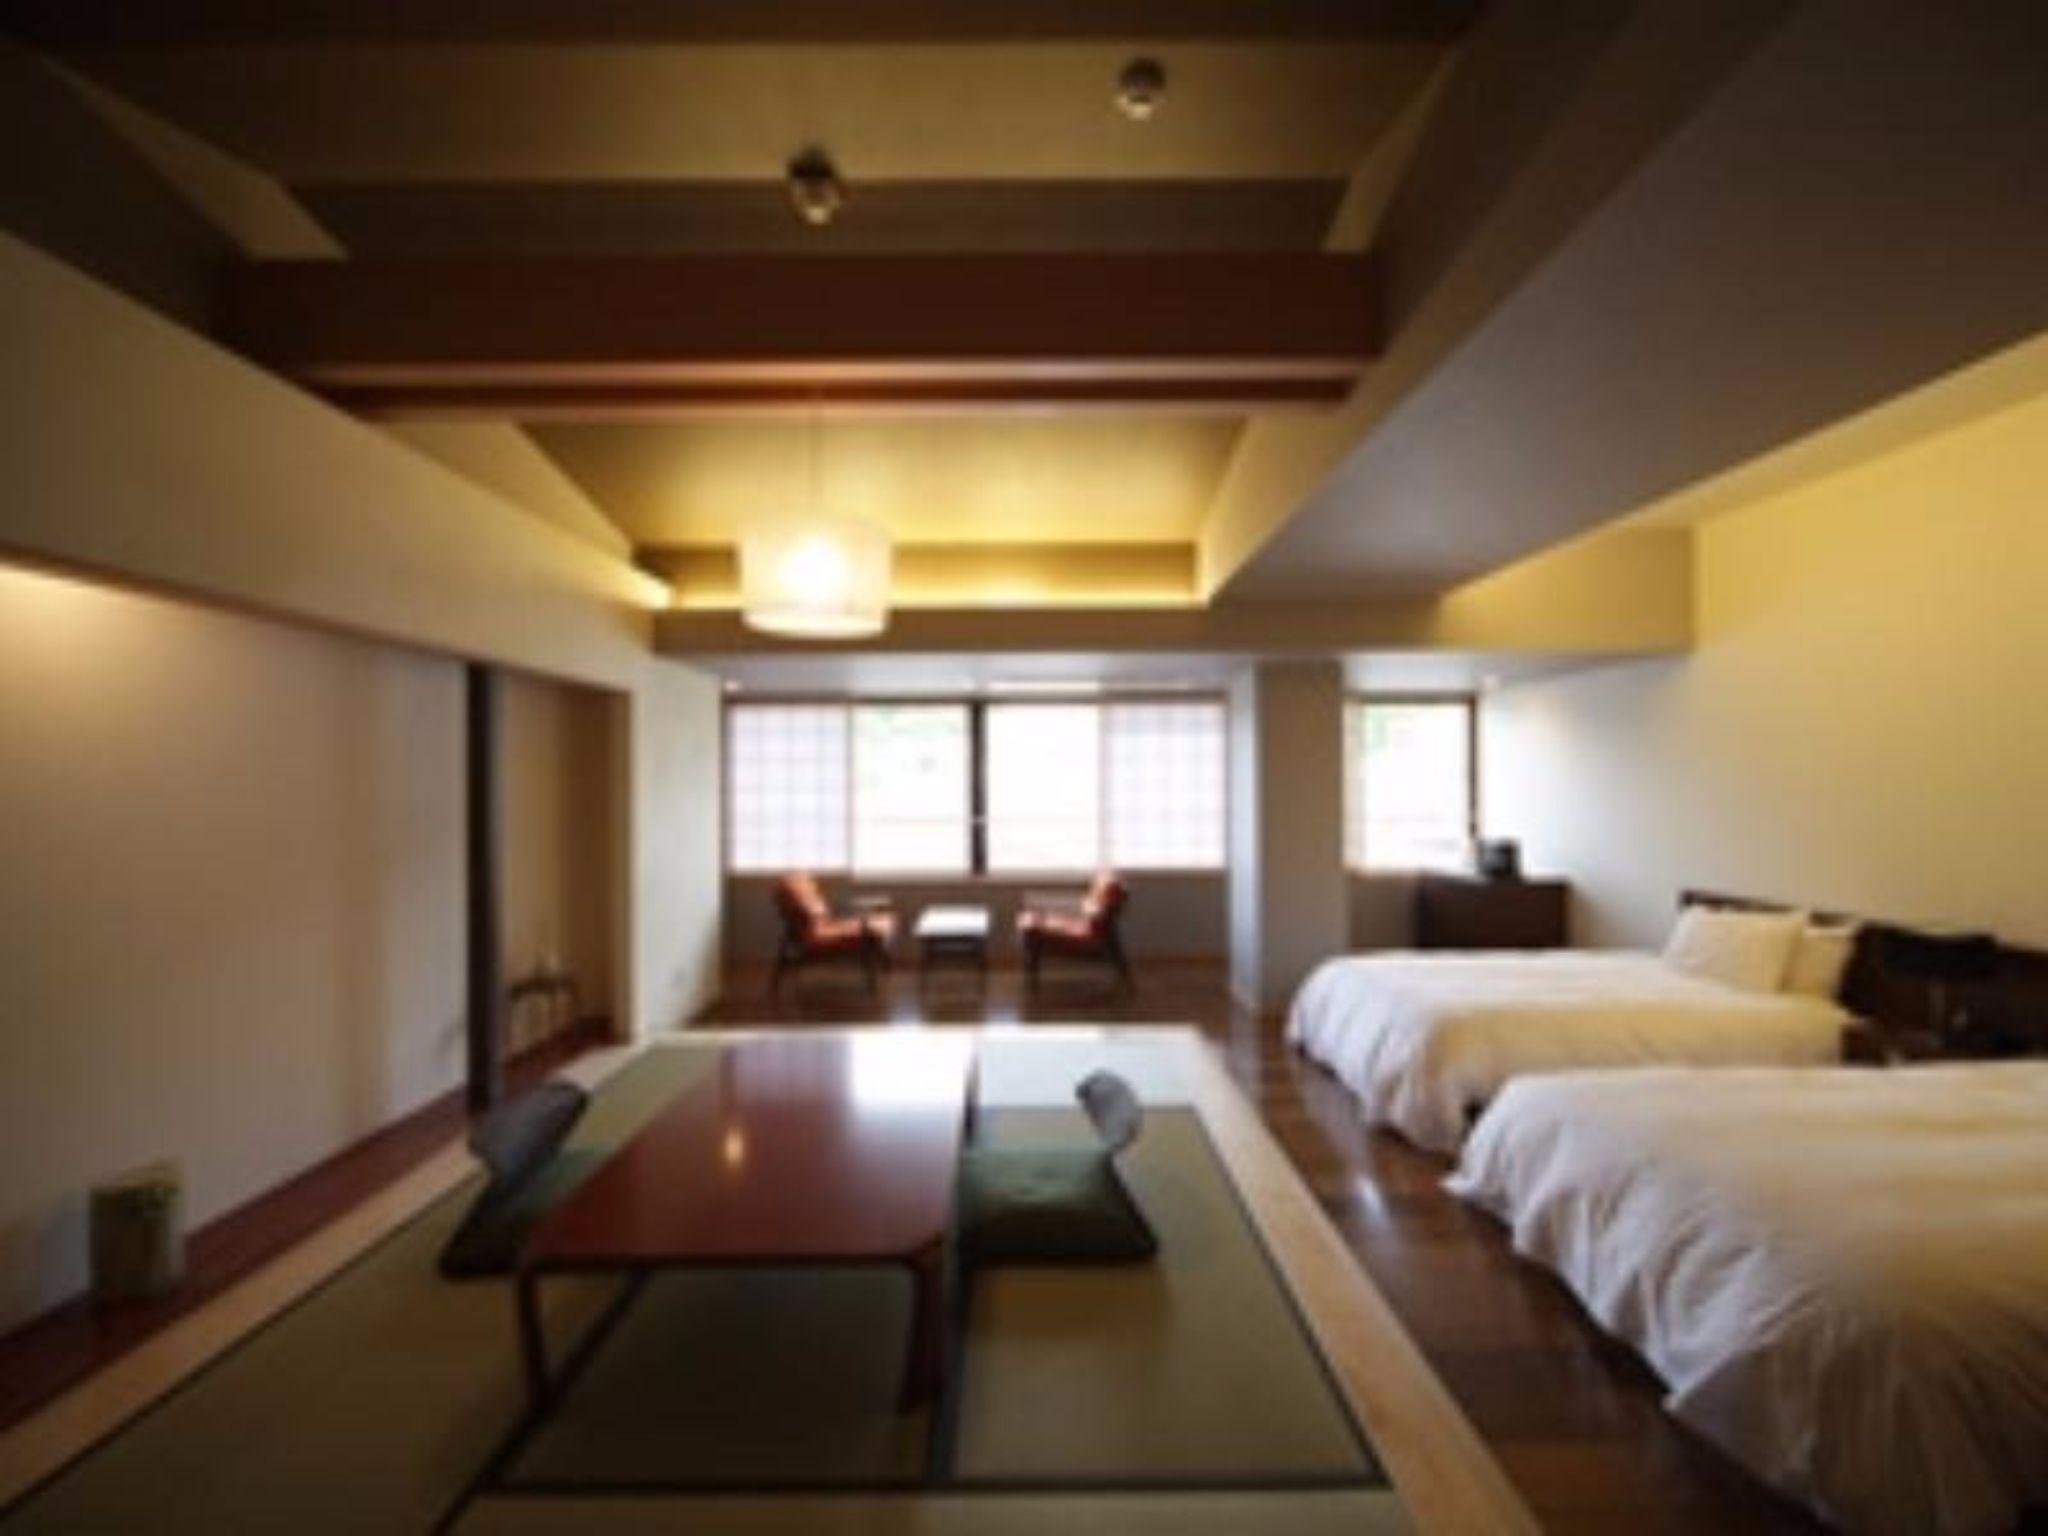 Mountain View Japanese Western Style Room for 4 People with Twin Bed - Non-Smoking